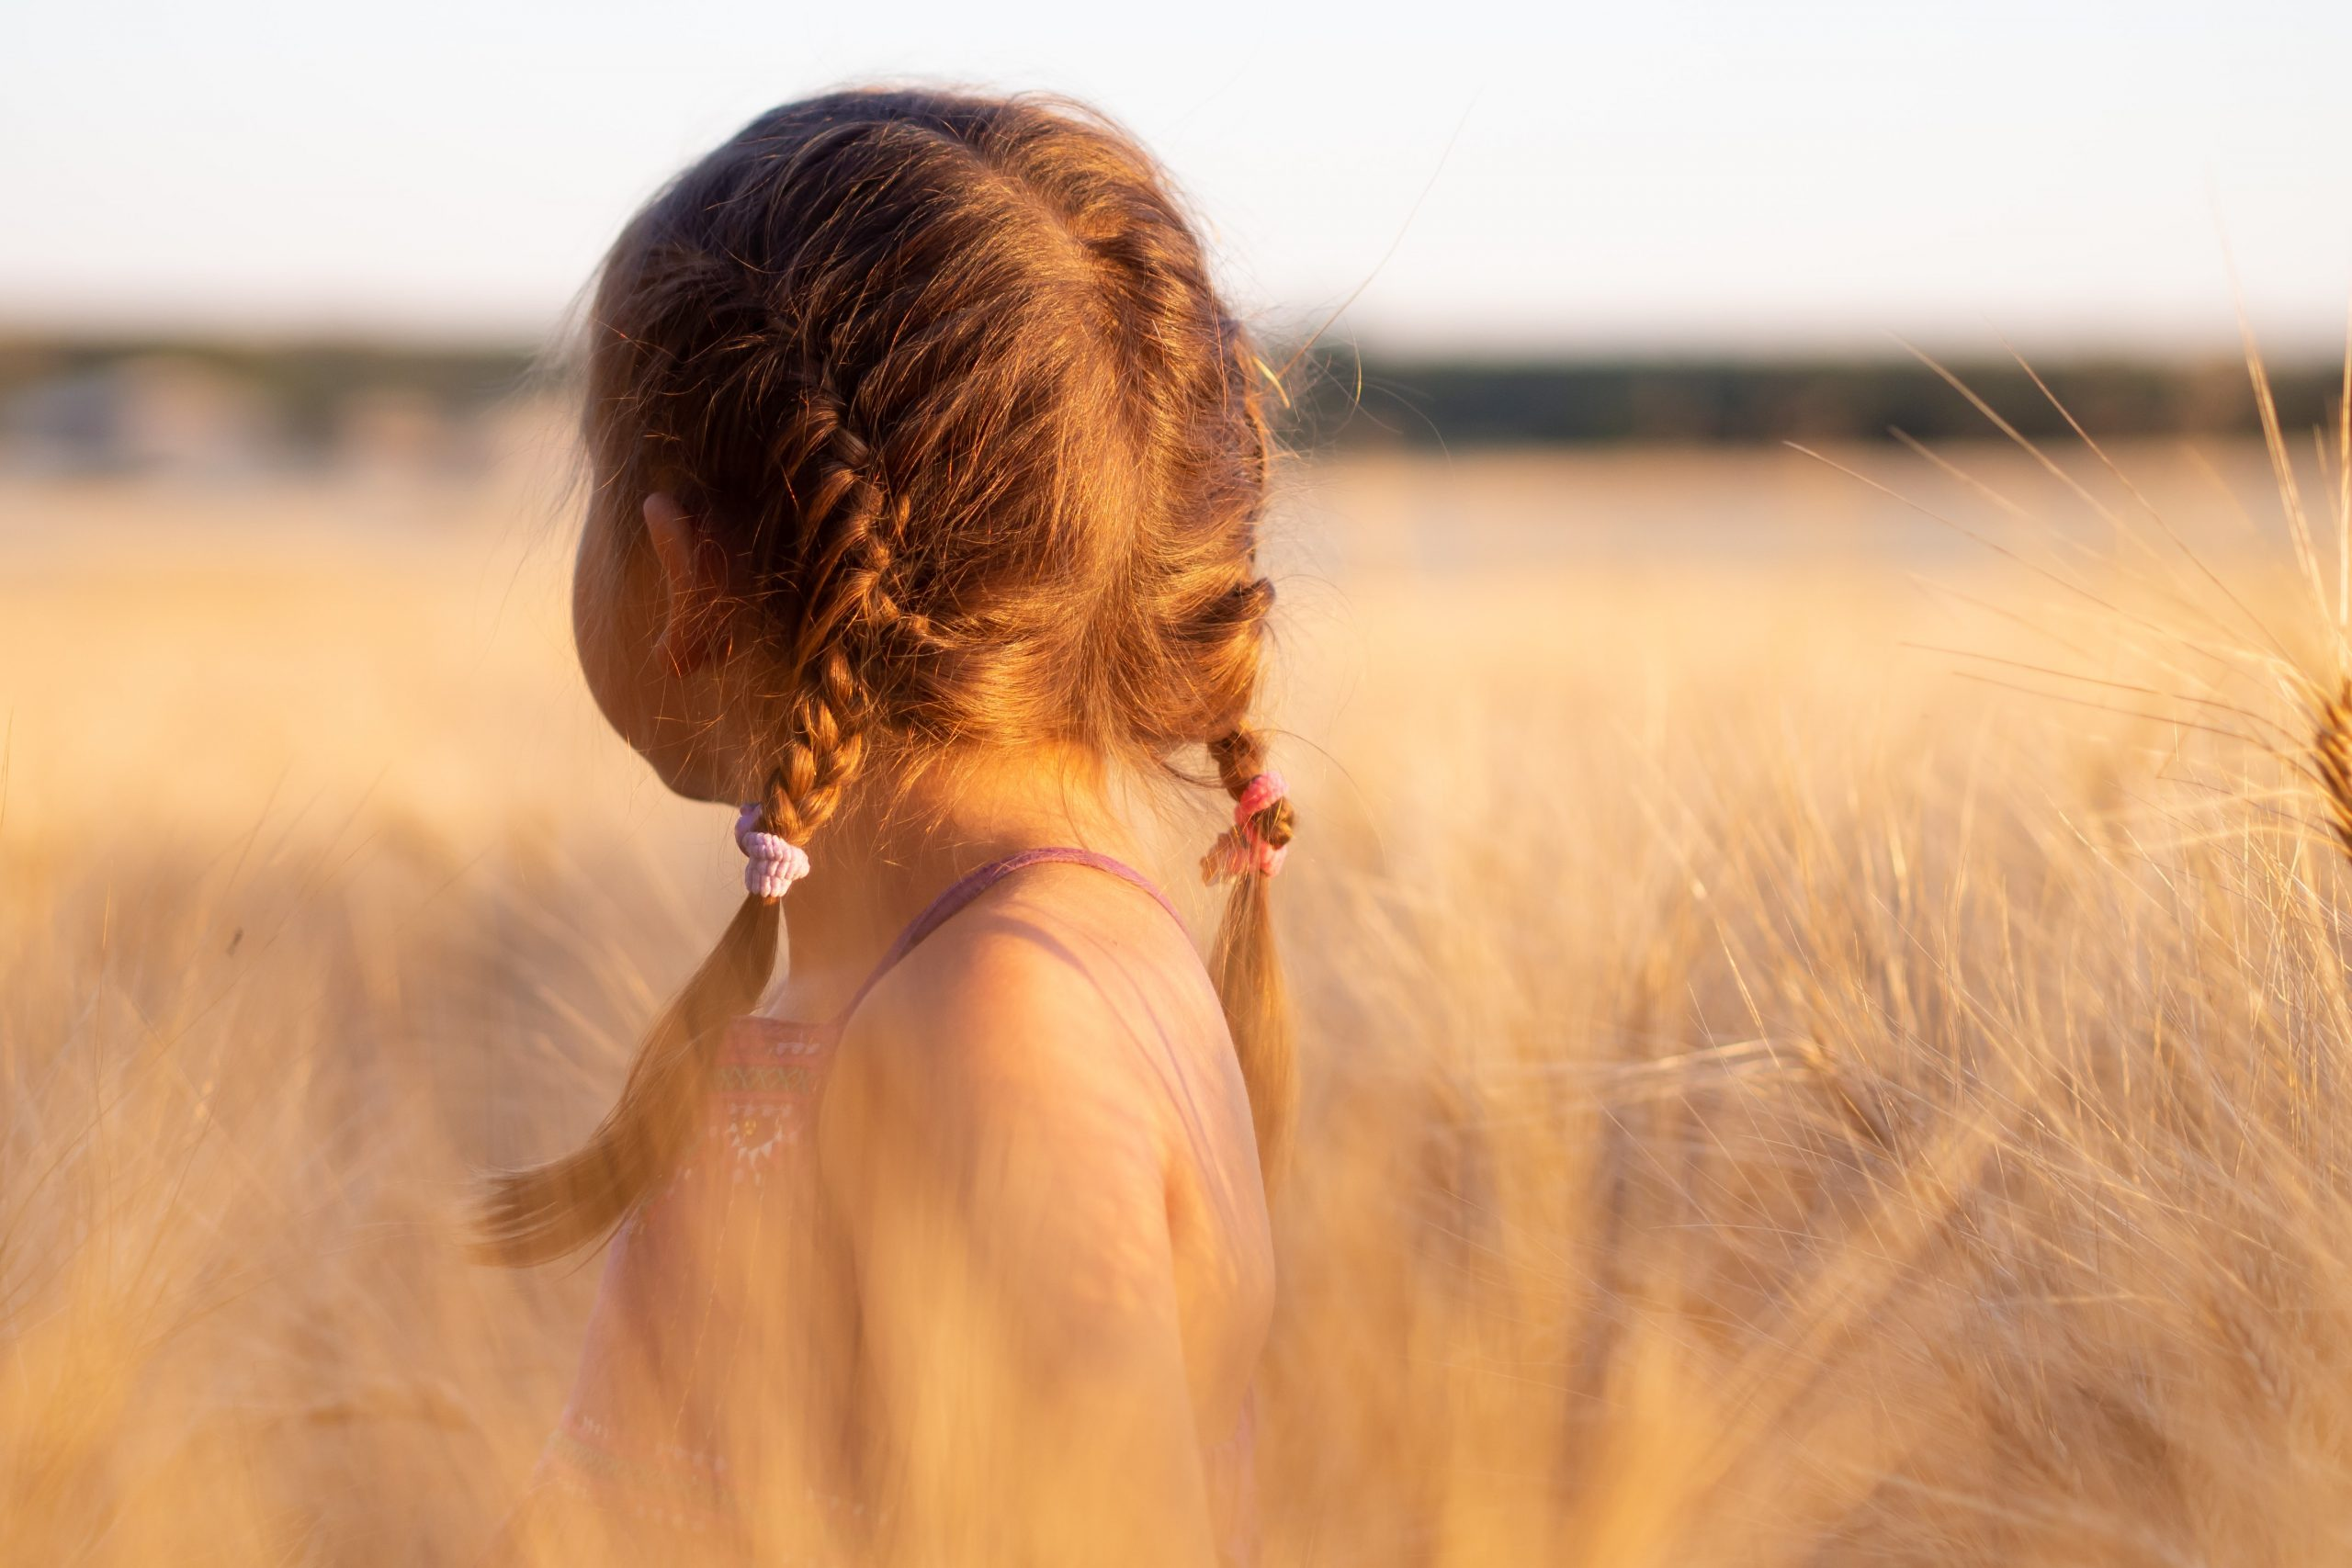 signs of ptsd from childhood trauma